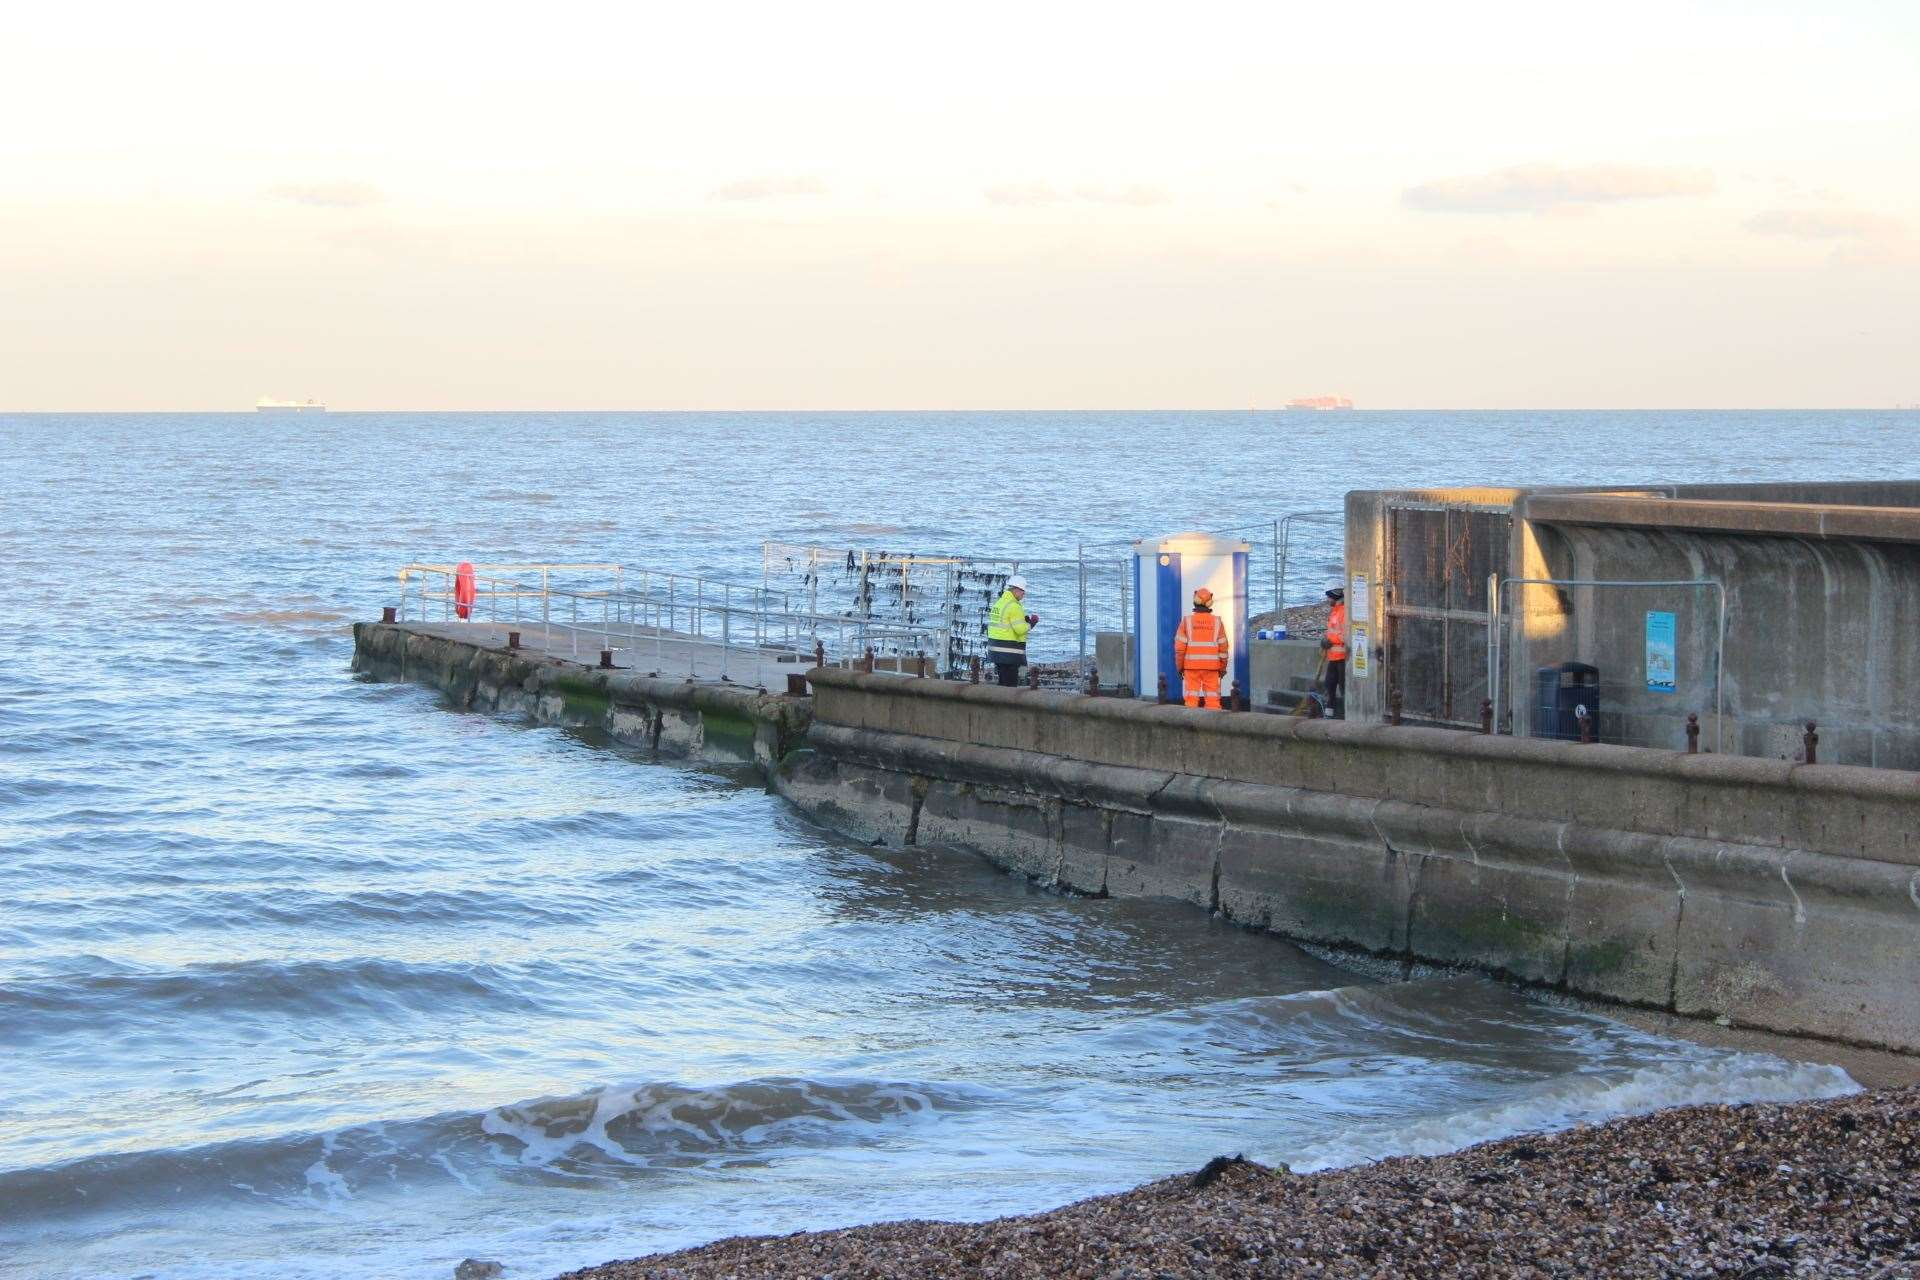 Neptune's Jetty, Sheerness